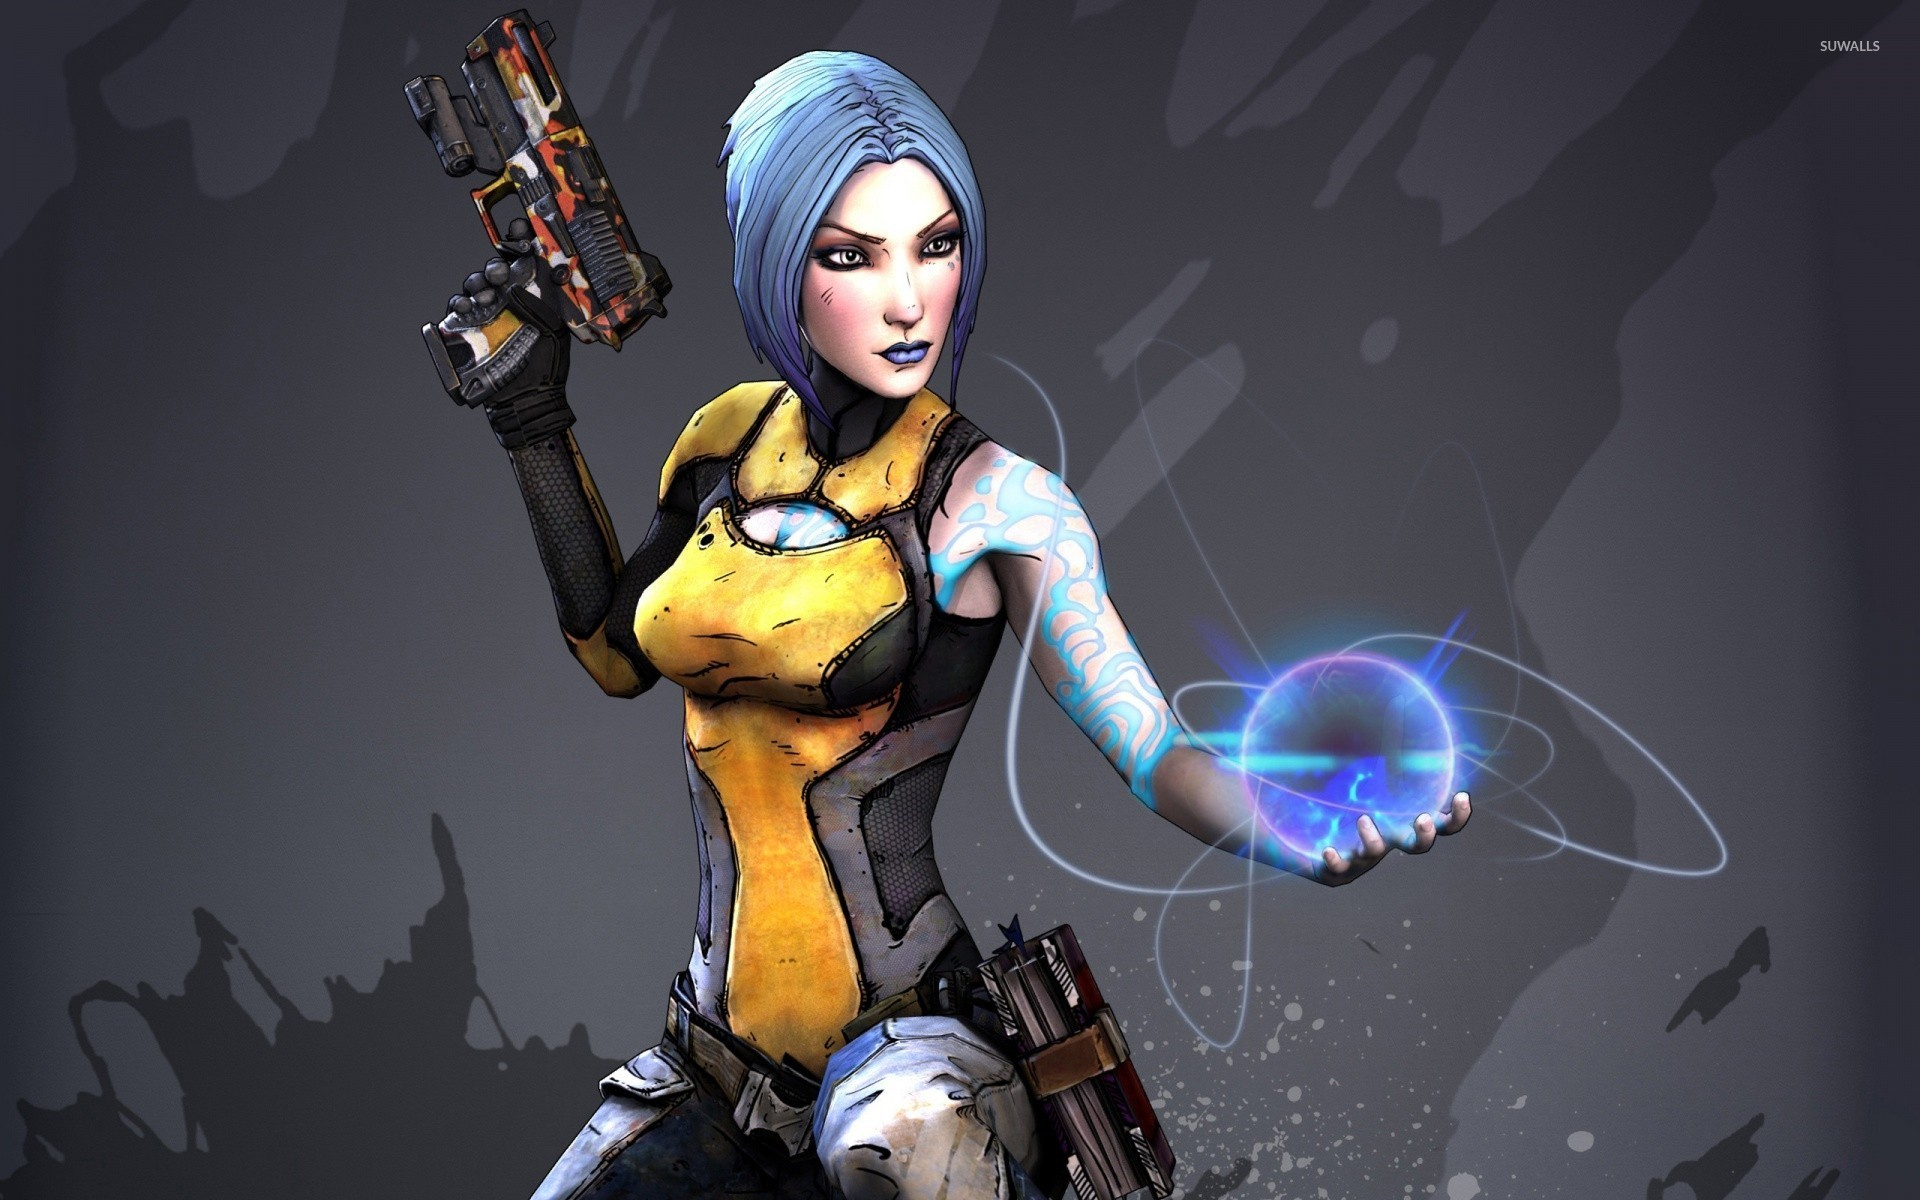 Maya - Borderlands 2 wallpaper - Game wallpapers - #14688